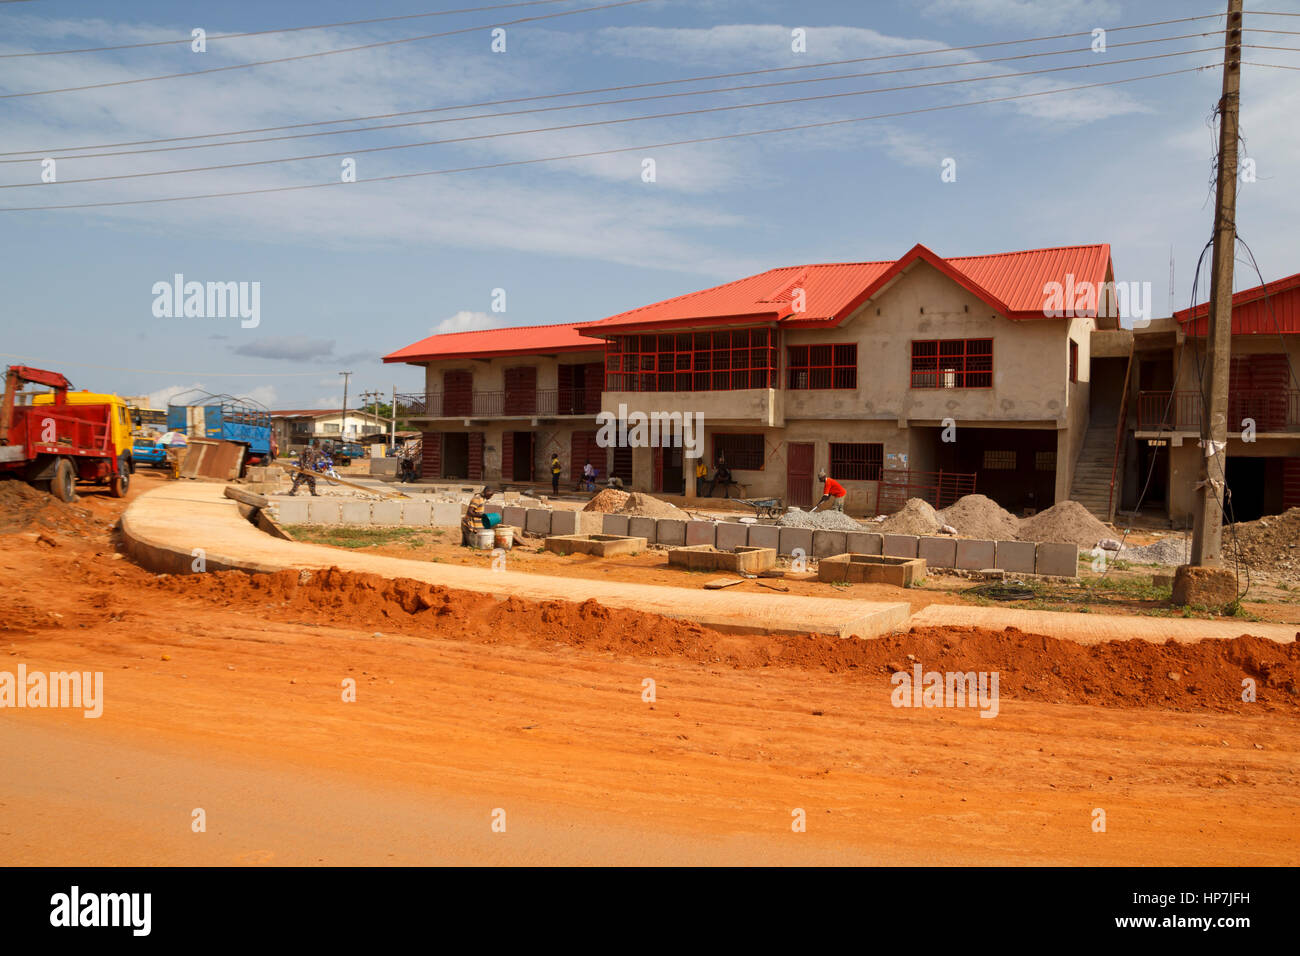 LAGOS, NIGERIA - MAY 11, 2012: Street under construction in a suburb of the nigierian city of Lagos, one of the - Stock Image